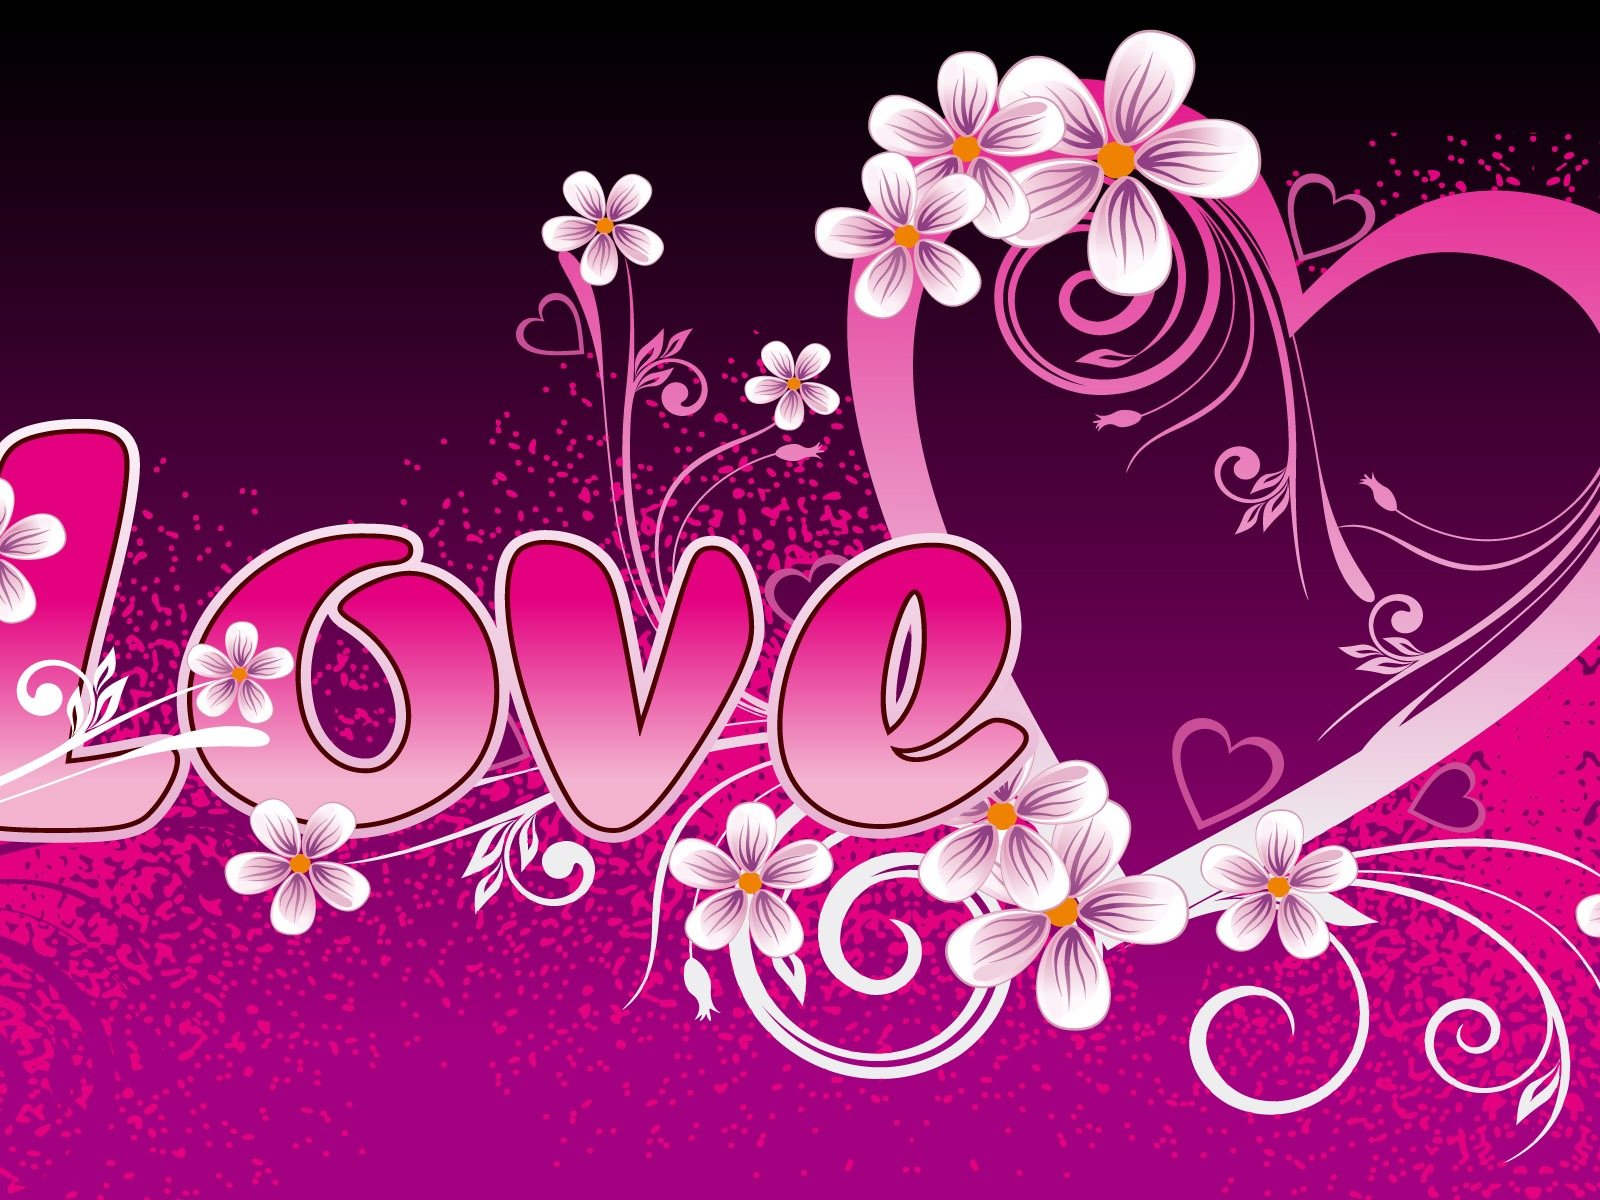 Love Wallpapers For Valentine Day 1 : Valentine s Day Love Theme Wallpapers #1 - 1600x1200 ...